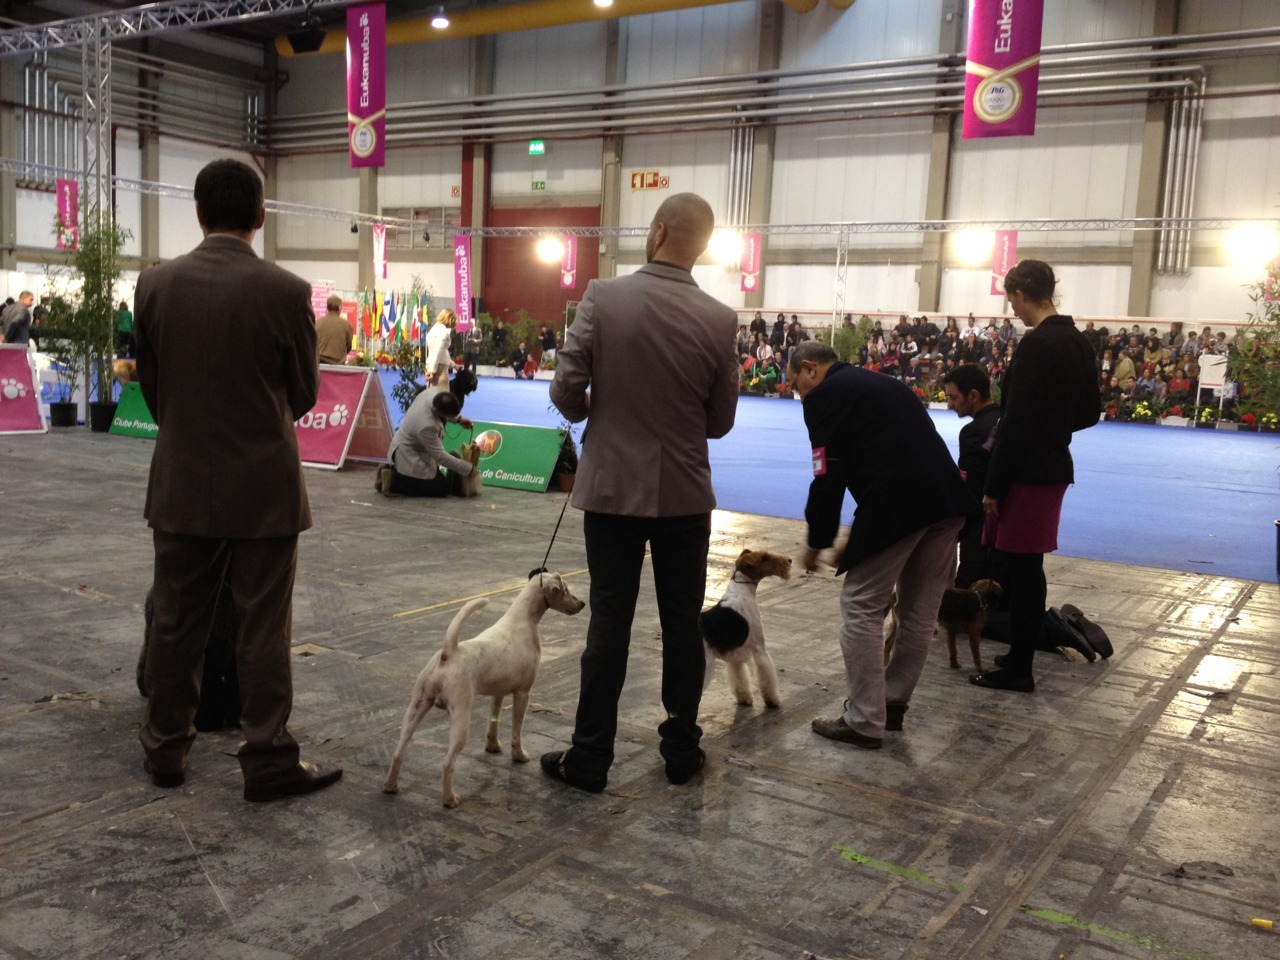 The #Porto International Dog Show My weekend was dog-filled! My Dad's Veterinary Hospital (Hospital Veterinário do Porto) was the official veterinary support for this big event in Porto. As a big animal lover, I couldn't miss the chance to accompany him and experience the backstage of the show, and get to see all the beautiful dogs! Here are a few photos from the event this weekend, in particular of the variety of breeds on show. The 'Best Dog in Show'  was won by a Portuguese Water Dog. I'm extremely lucky to have my amazing Dad as a vet. I grew up in his clinic and surrounded by animals, always with great love and respect for an animal's life. I believe this has been a really positive influence in my life, which I also see reflected in the sport I practice since I was 8, horse riding, which is of course, all about you and the horse.